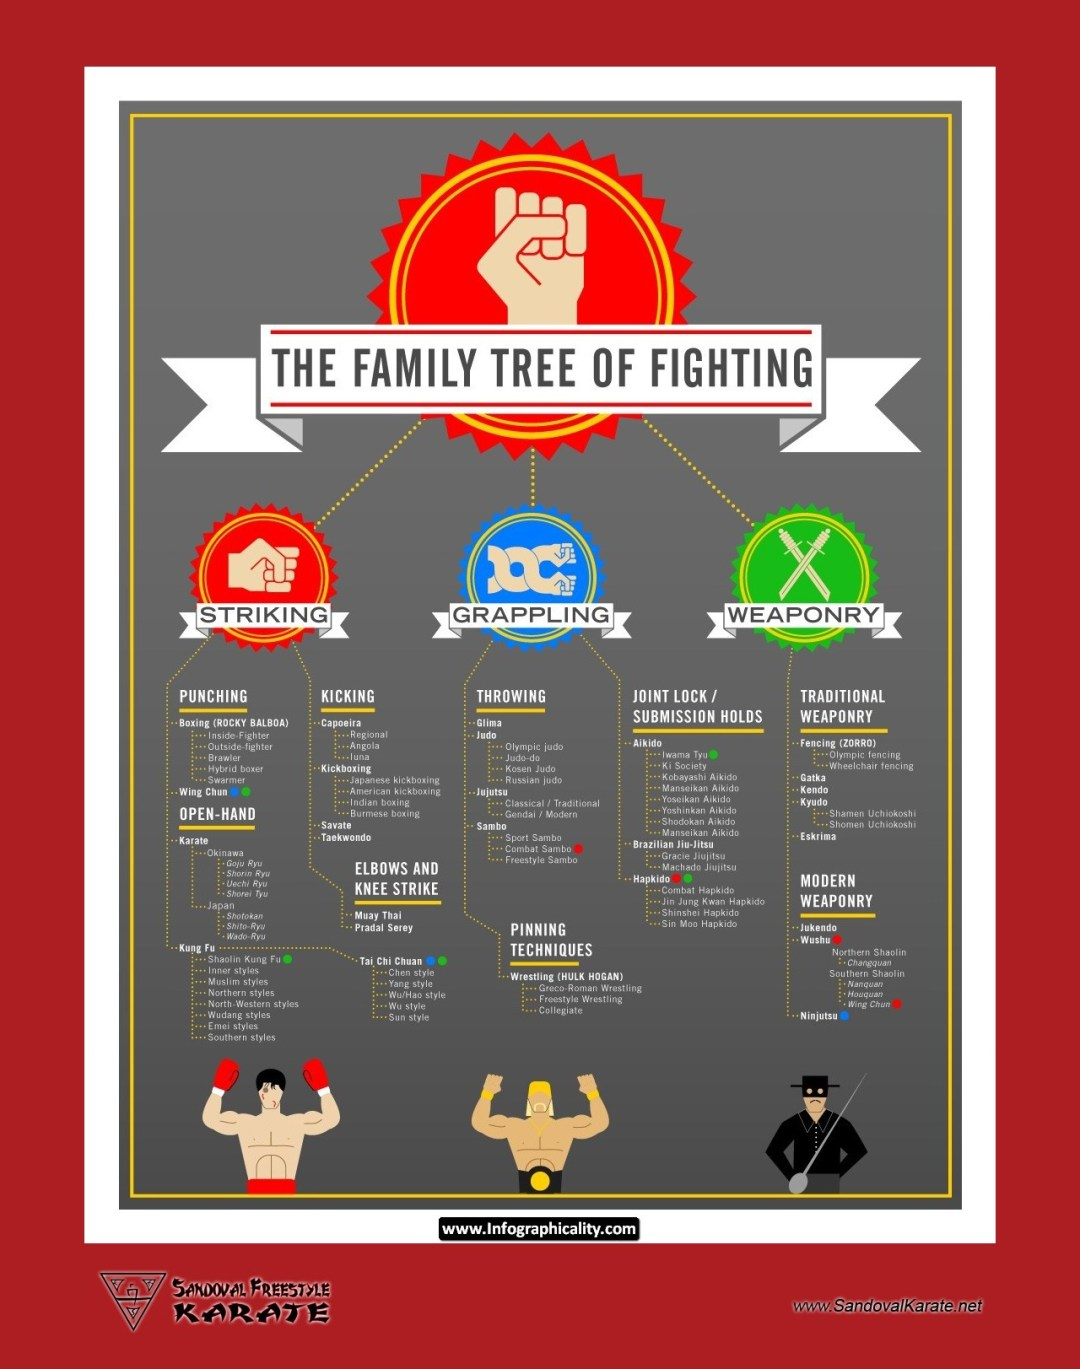 The Family Tree of Fighting Infographic